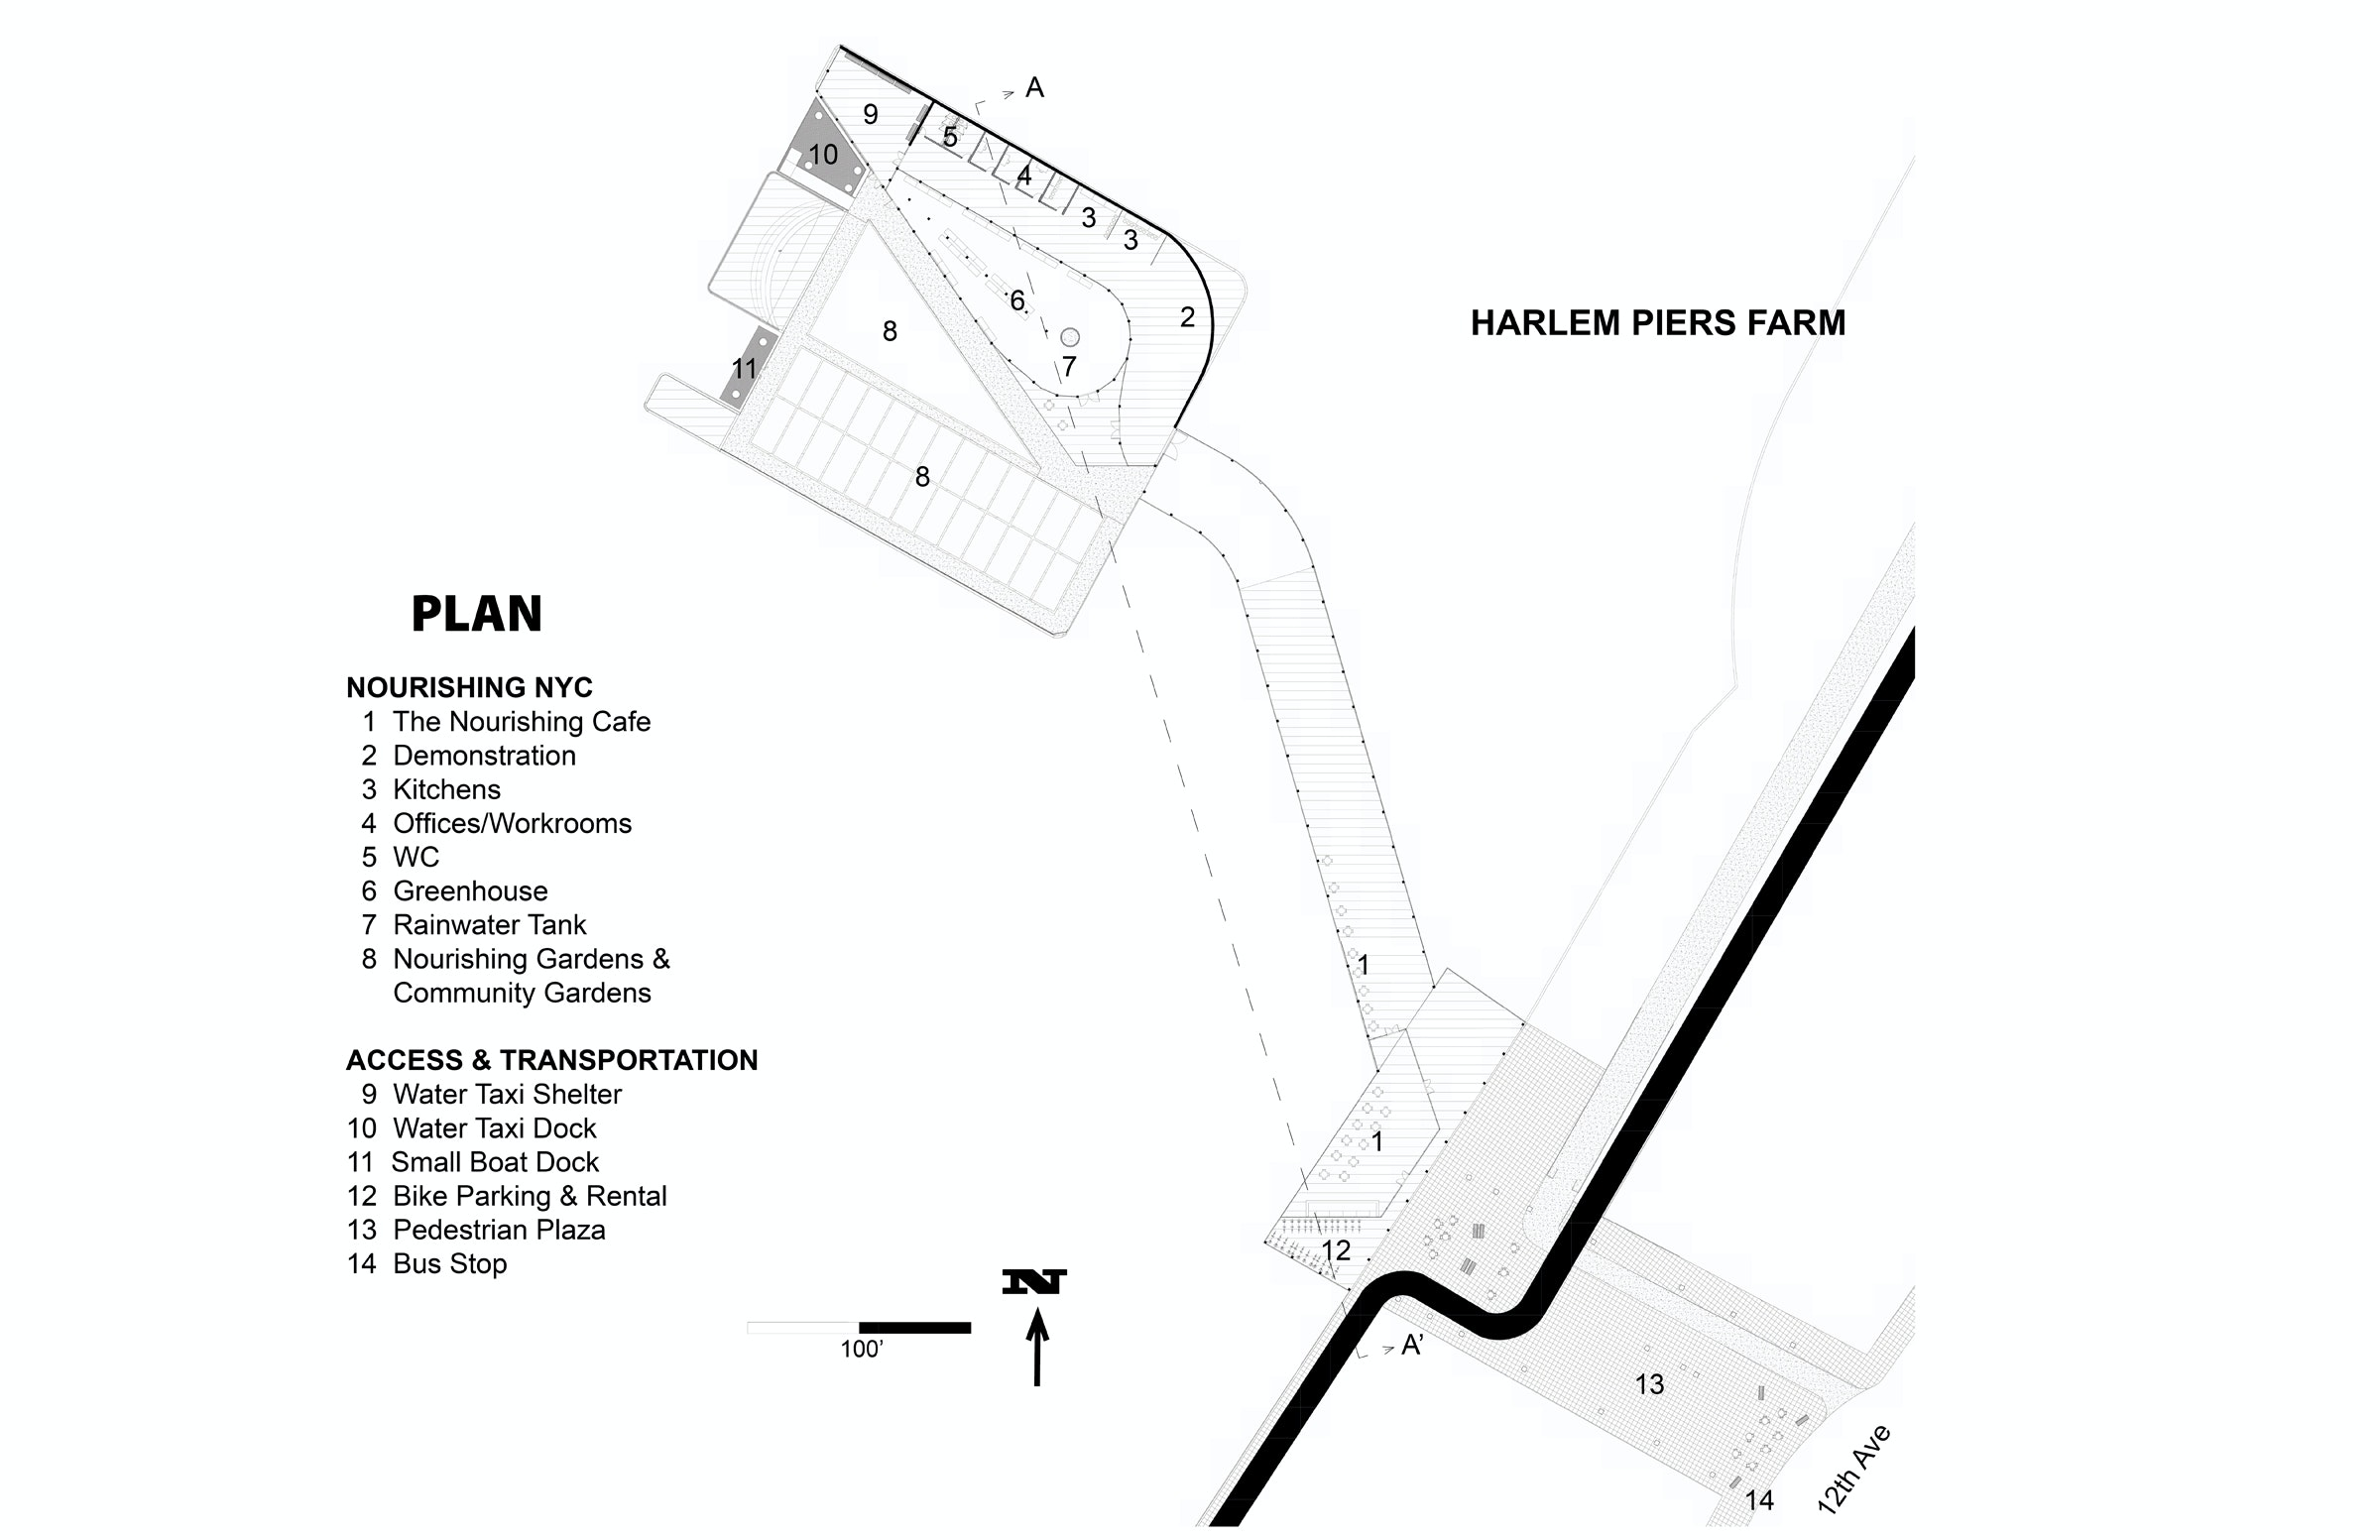 harlem piers farm   cultivating connections